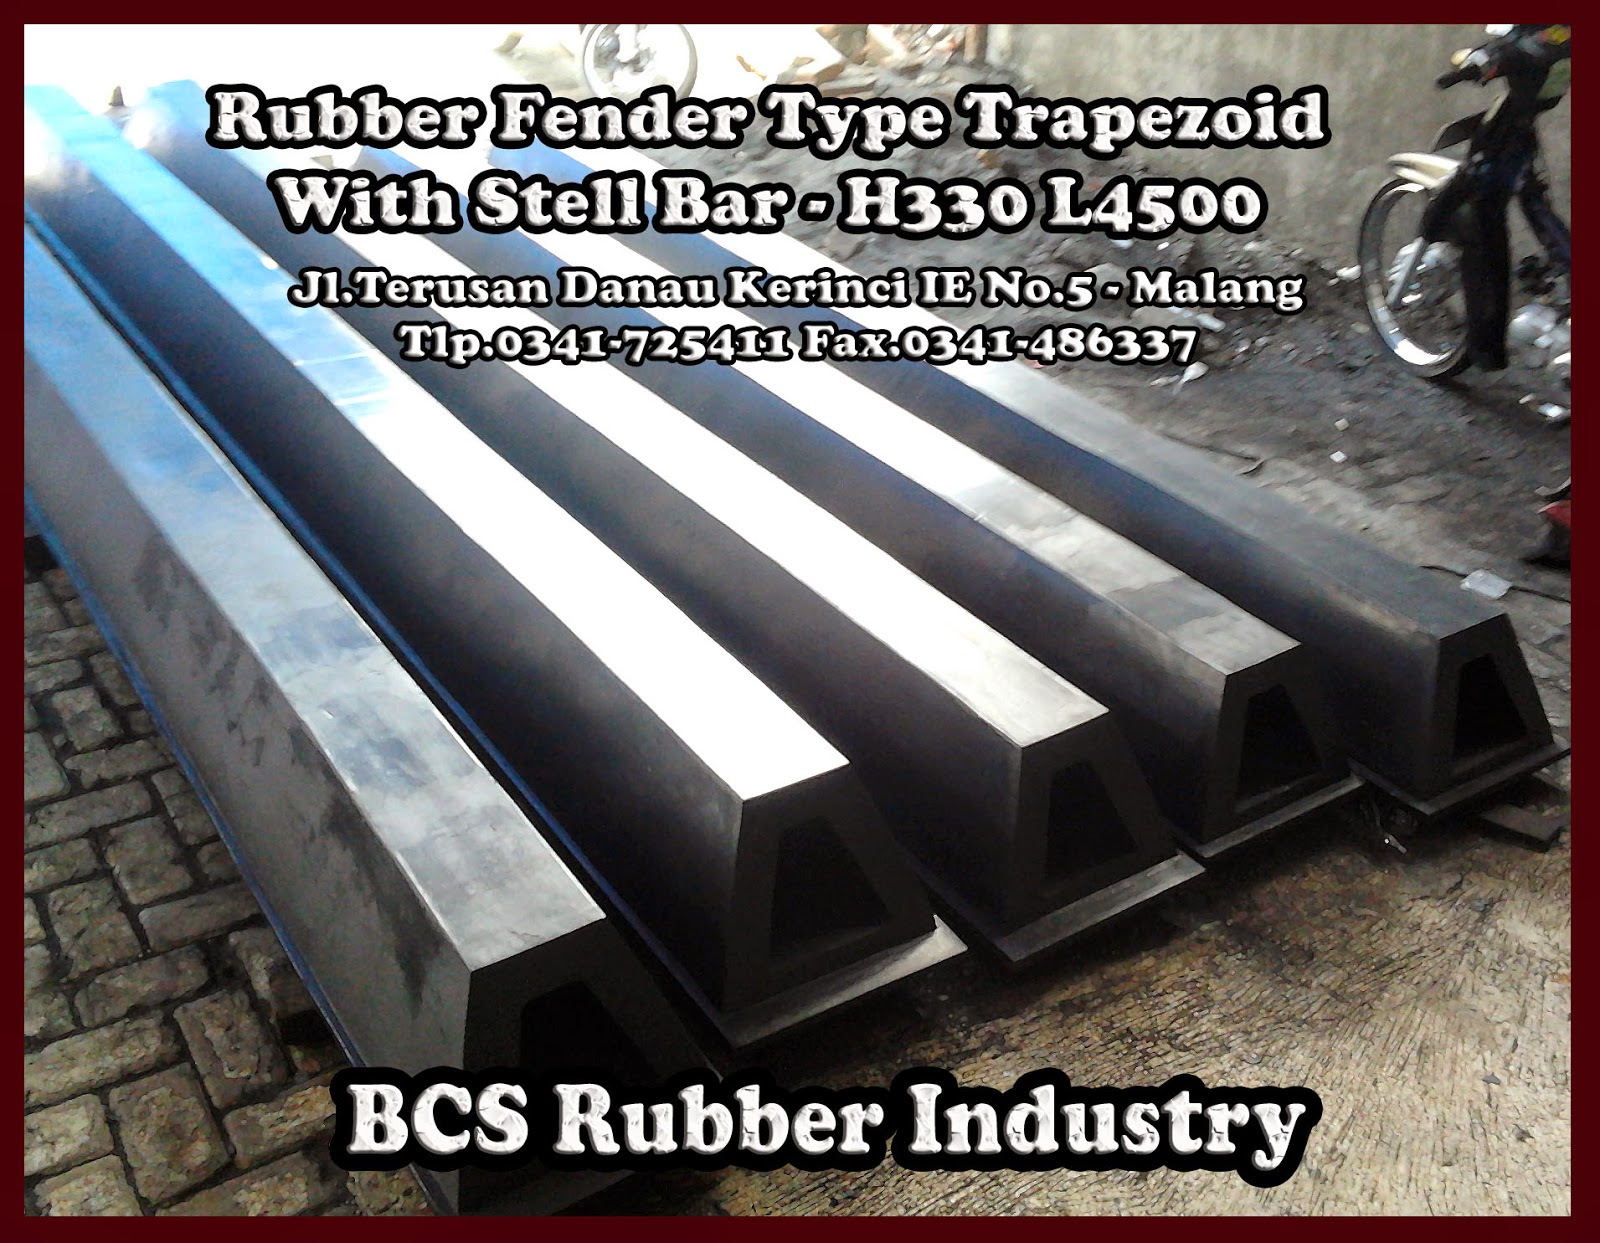 Rubber Fender Trapezoid